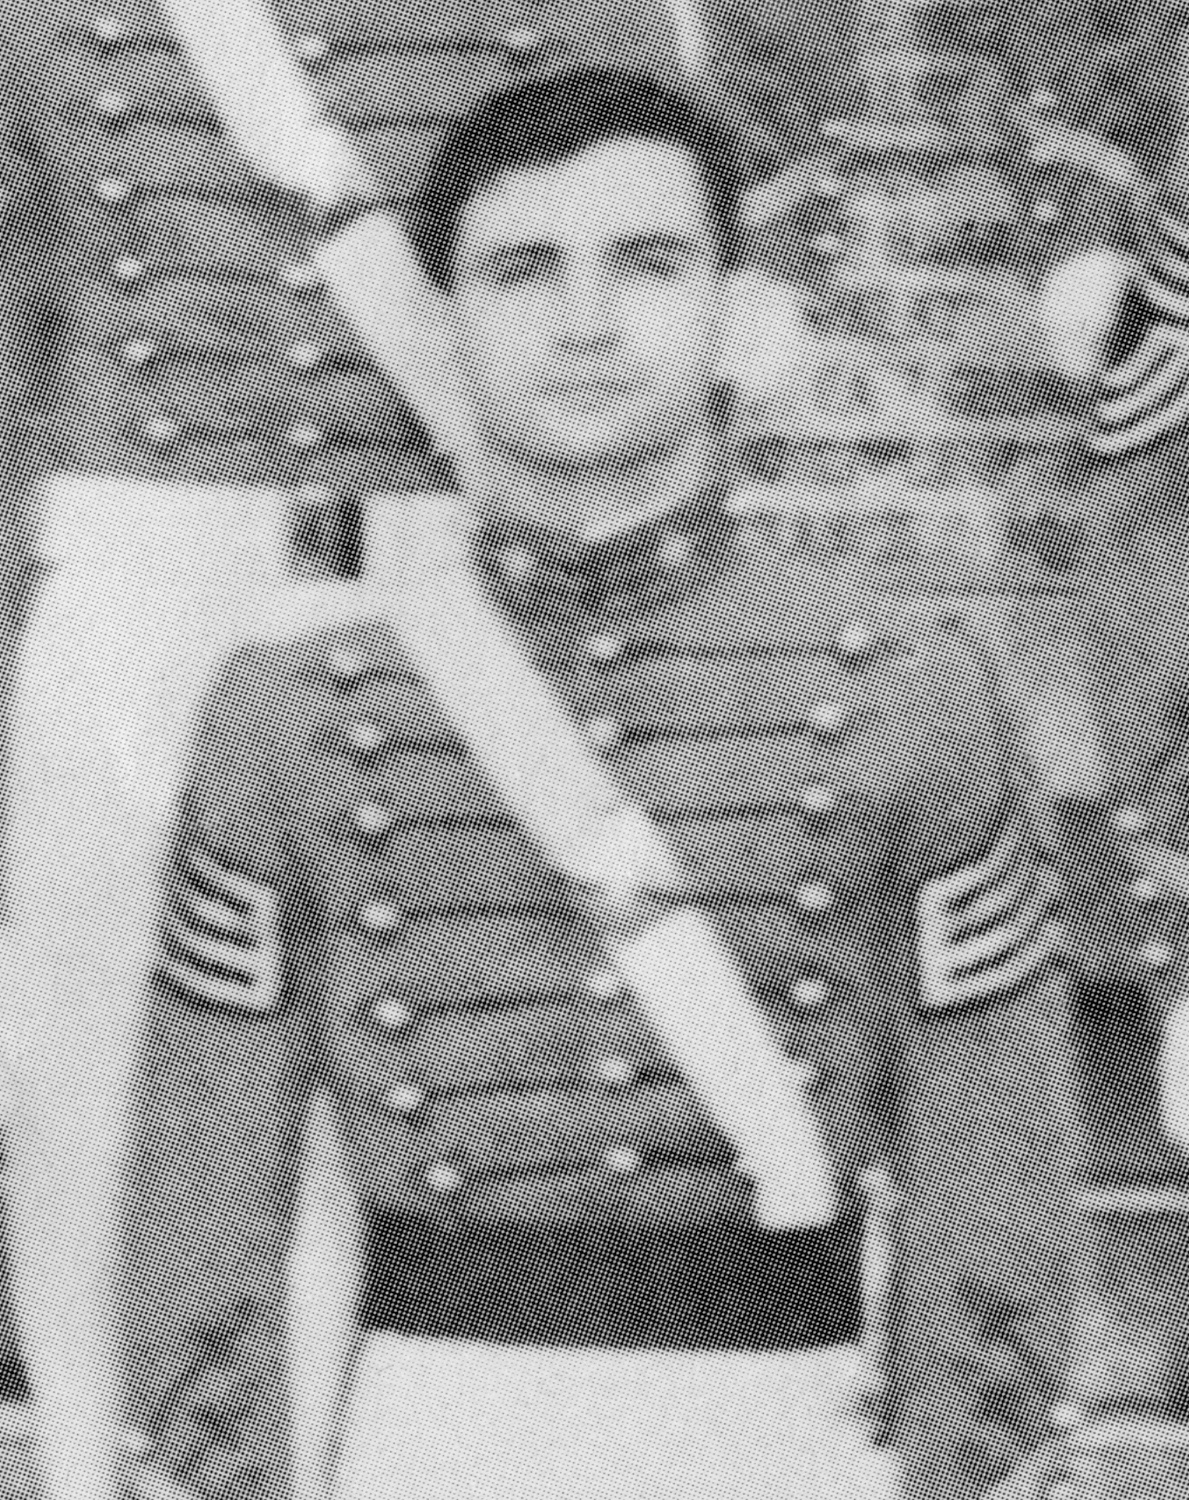 Photo of young Jack Reed in Military uniform